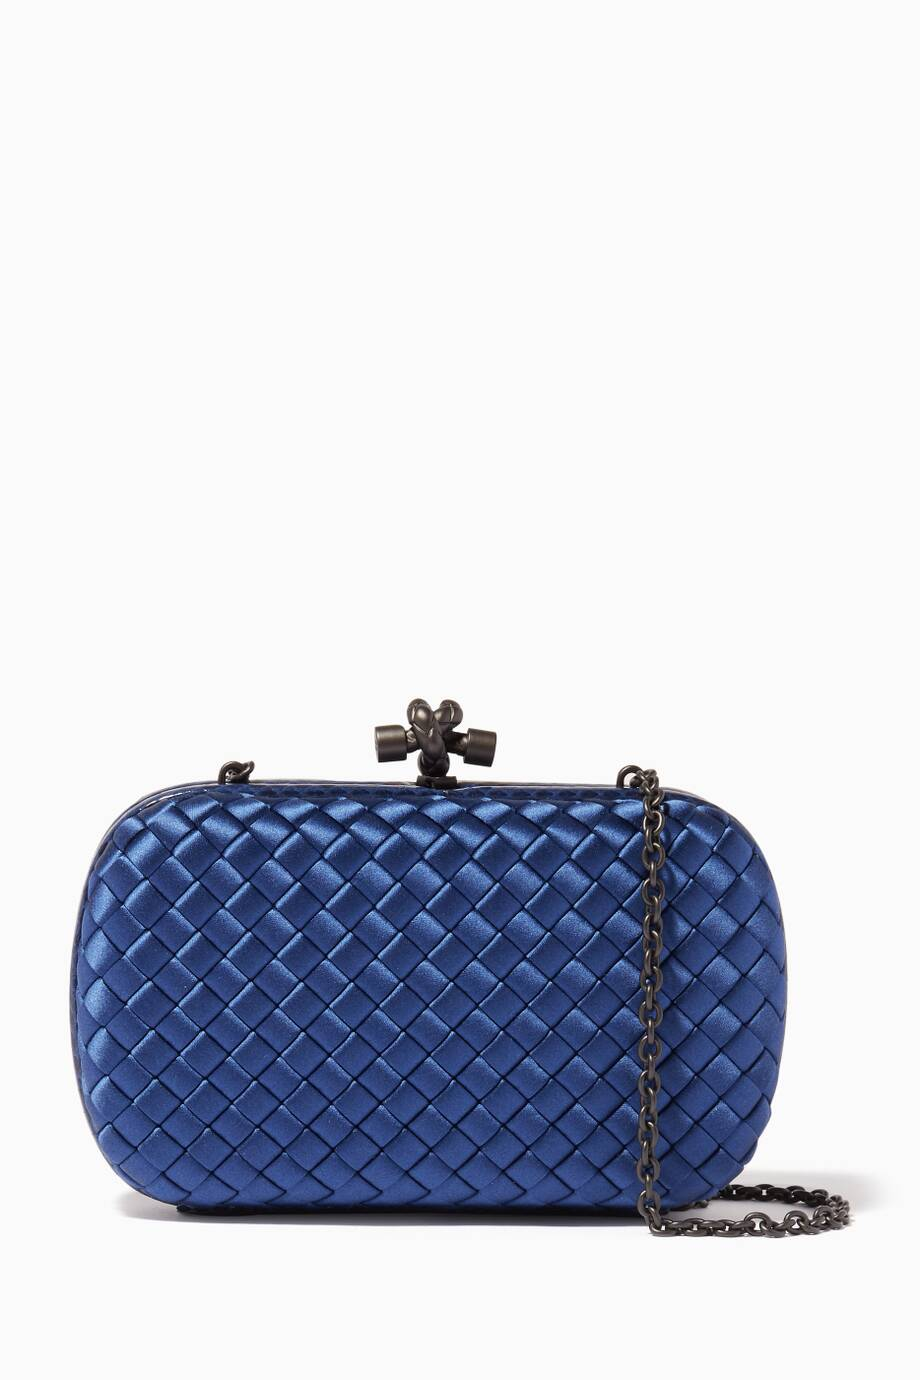 a81d1458b2f Shop Luxury Bottega Veneta Cobalt Ayers Satin Chain Knot Clutch ...